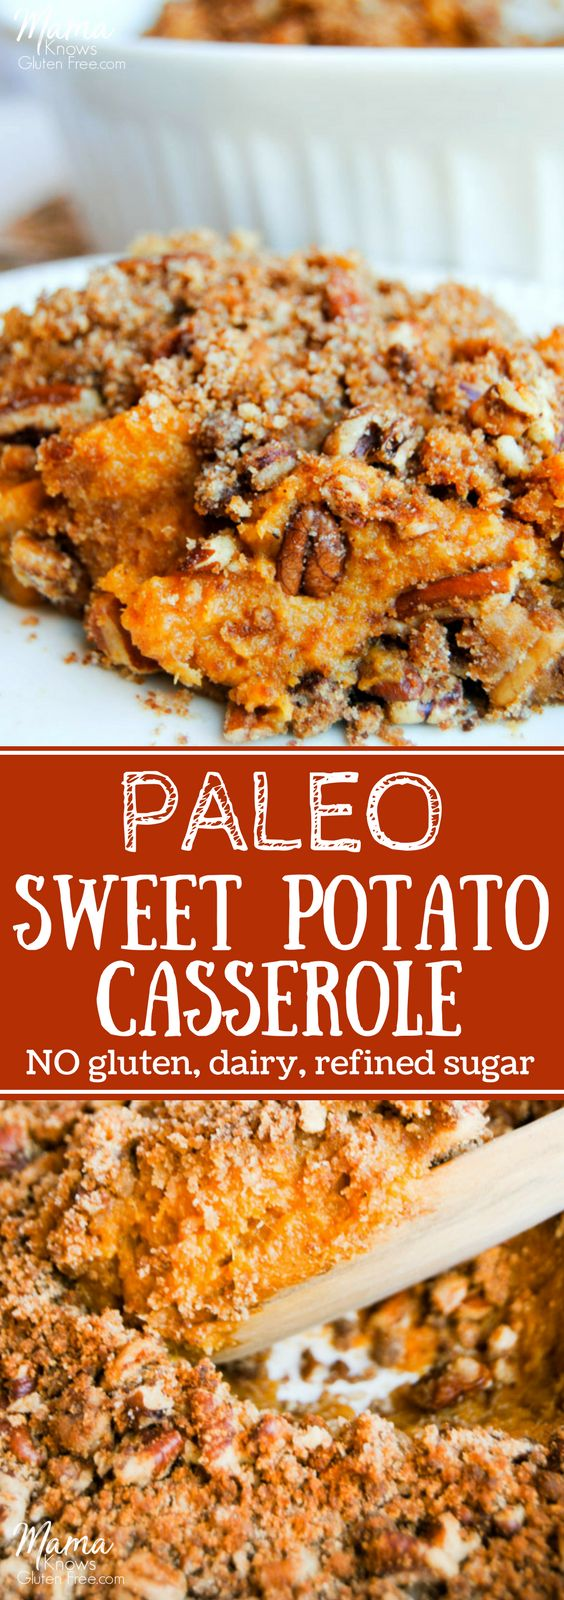 A Southern classic with a Paleo twist. Fluffy sweet potato casserole topped with a crunchy pecan crumble. Gluten-free, dairy-free, grain-free and no refined sugar. #paleorecipe #paleothanksgiving #glutenfreethanksgiving #sweetpotato